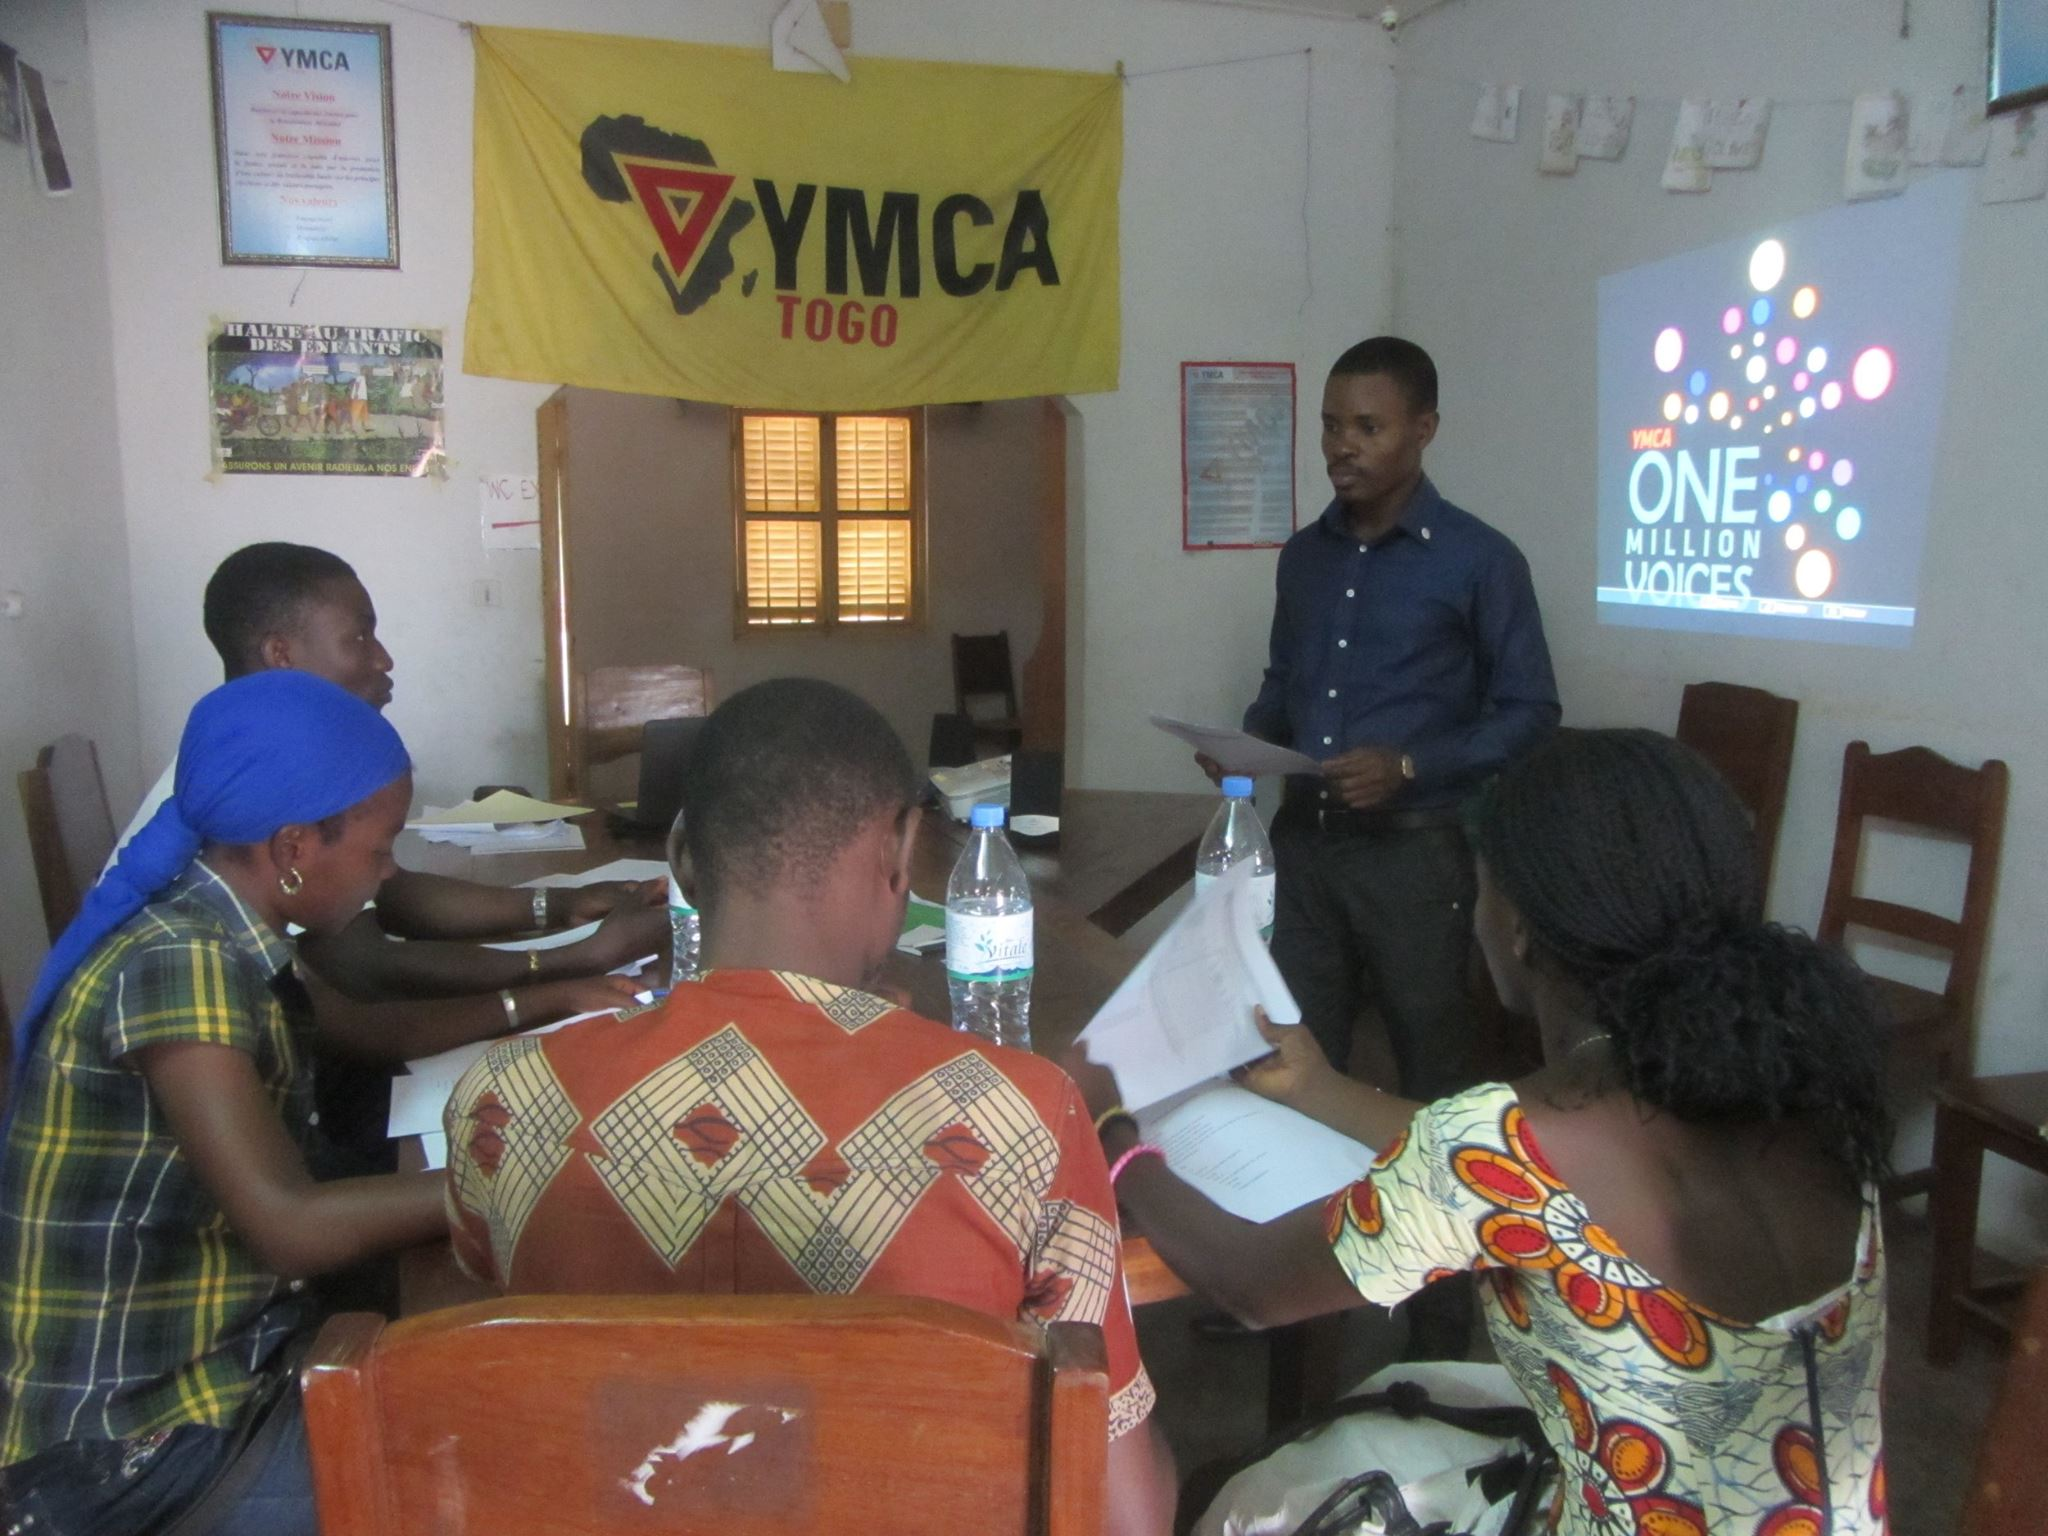 YMCA Togo participe activement au projet «one million voices » initié par l'Alliance universelle des YMCA